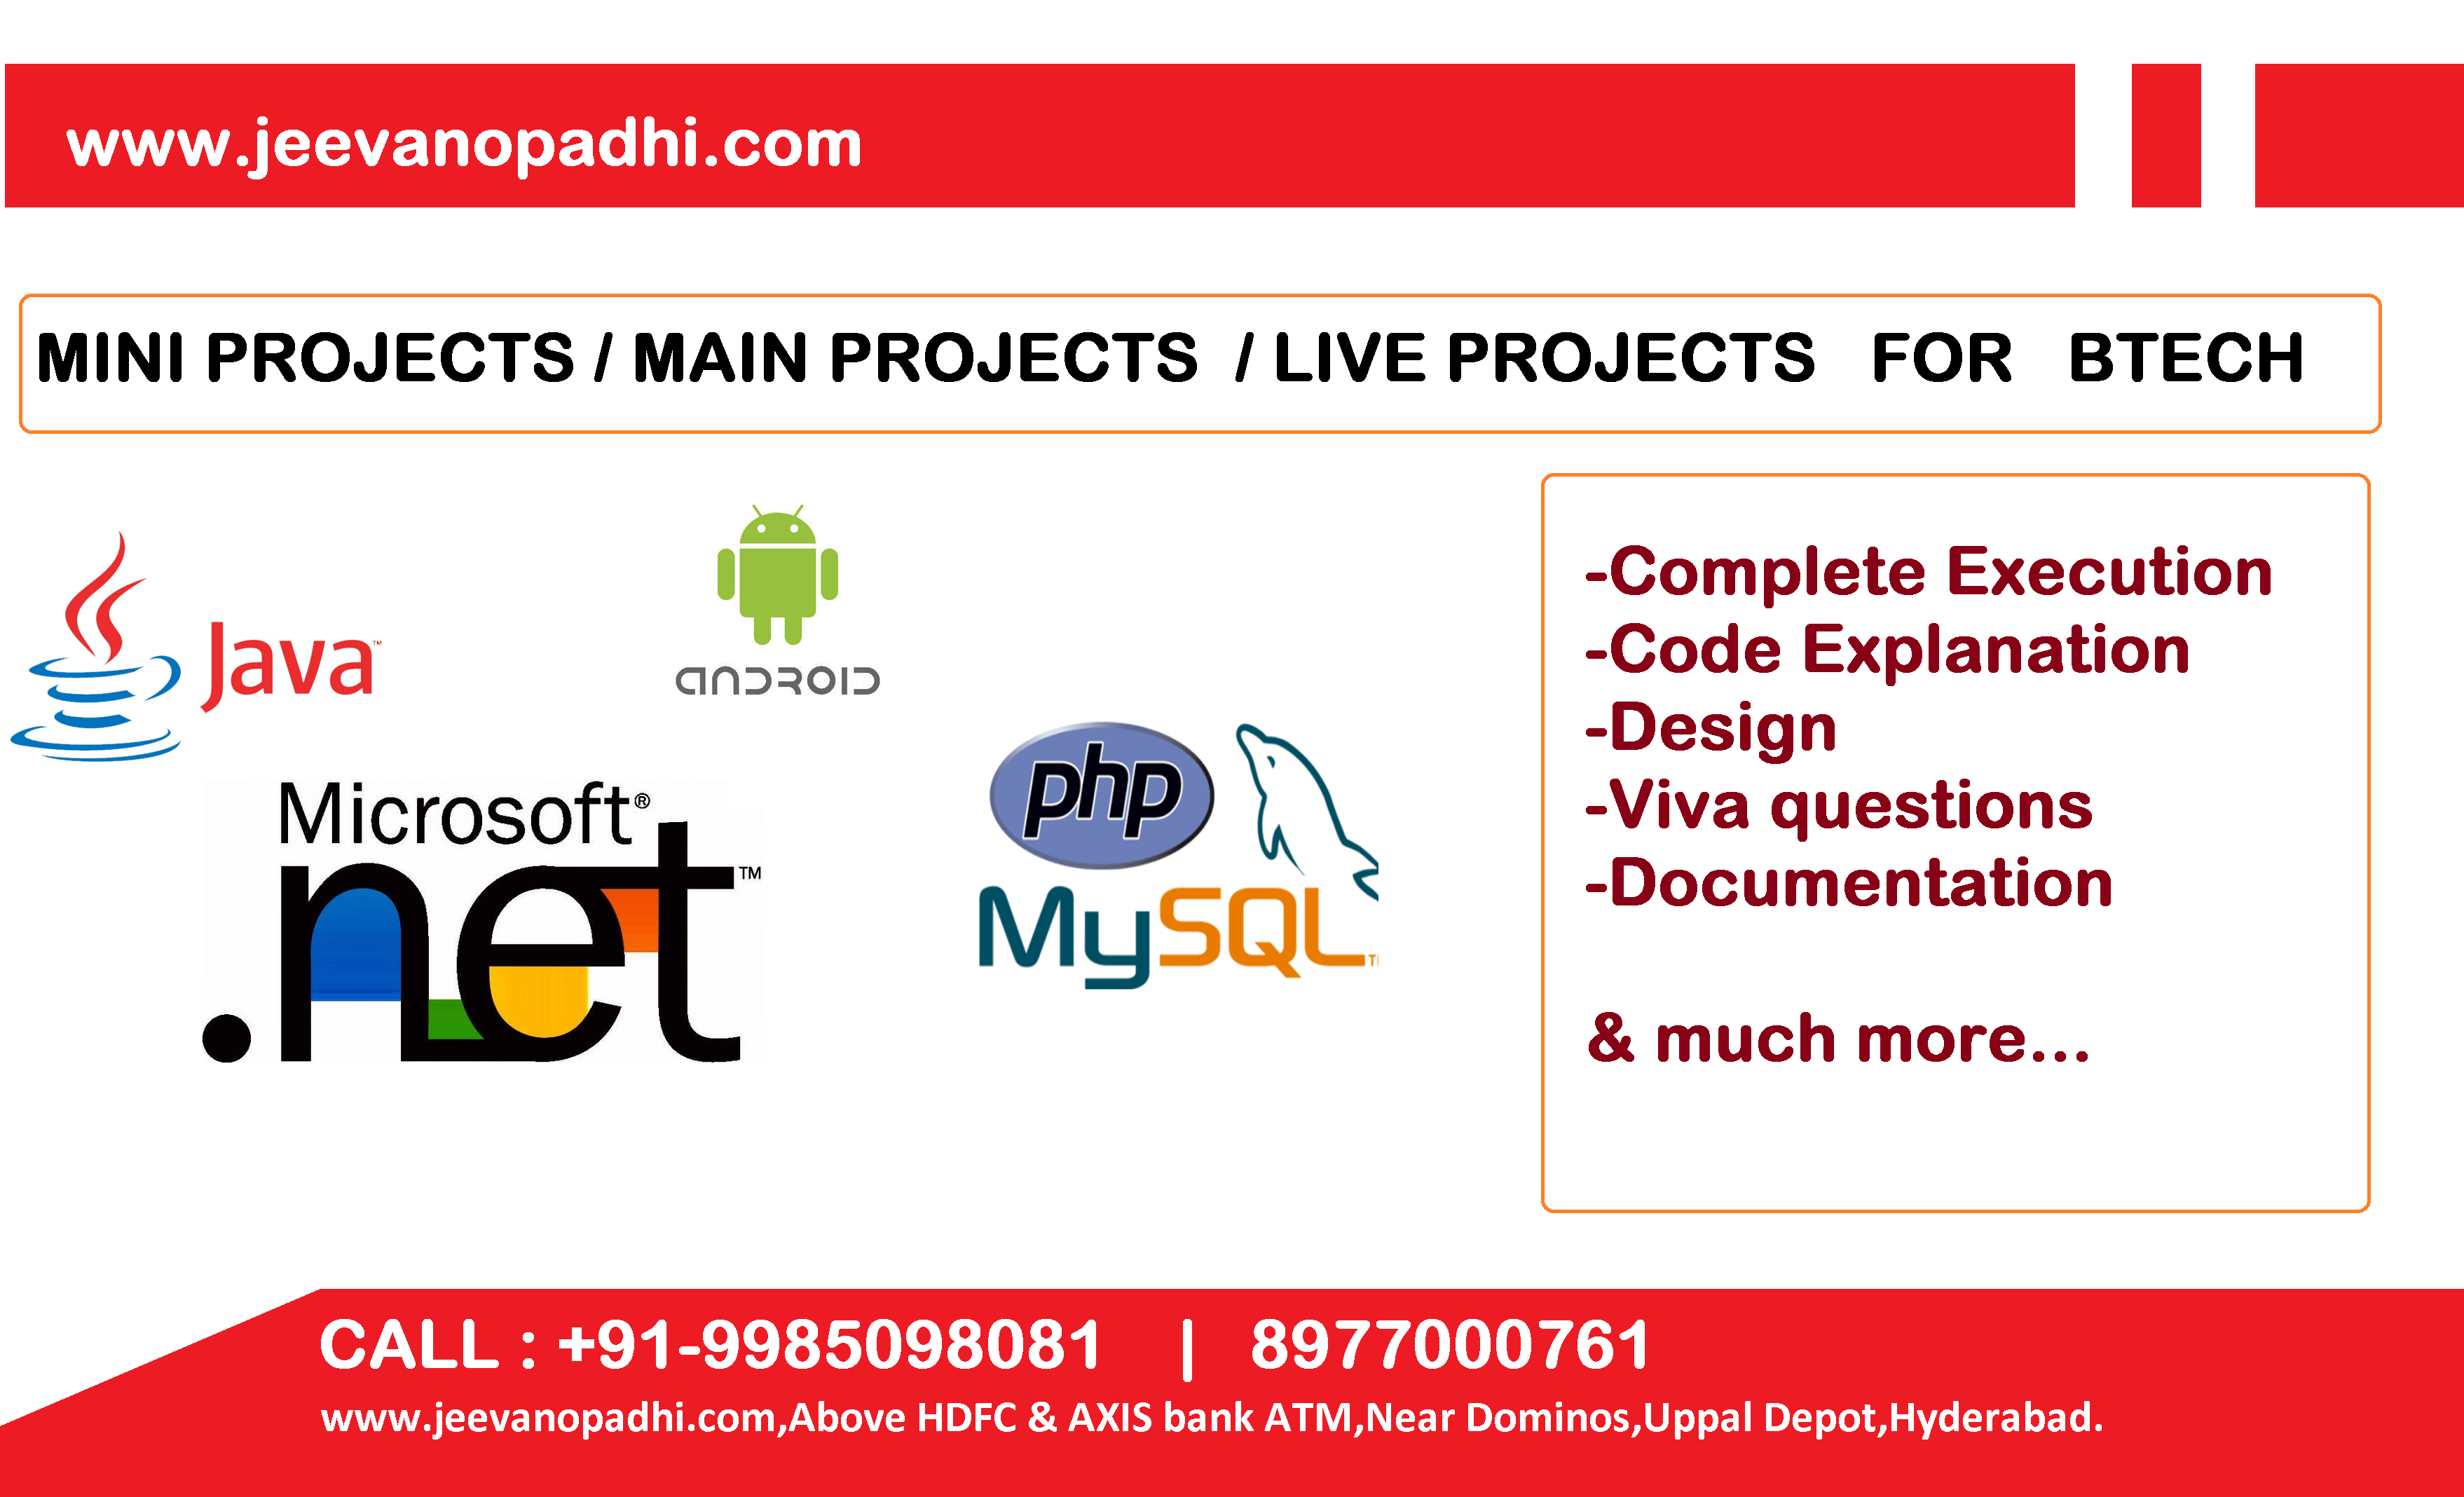 mini projects in hyderabad